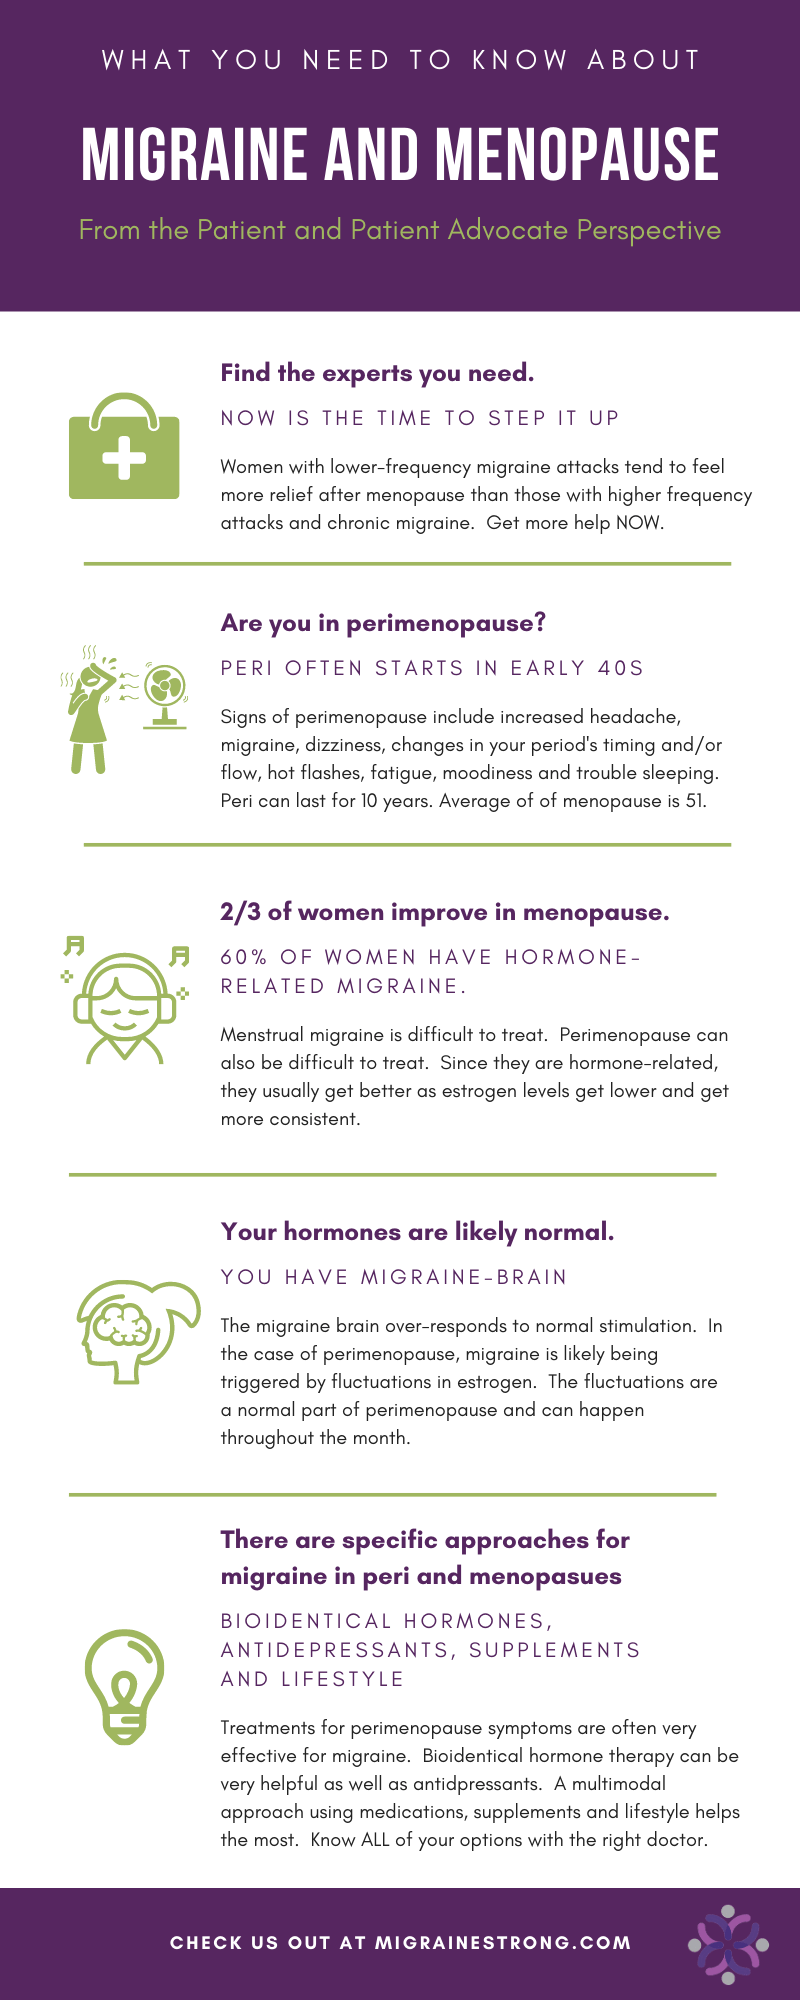 What No One Tells You about Migraines and Menopause (and Perimenopause Too)